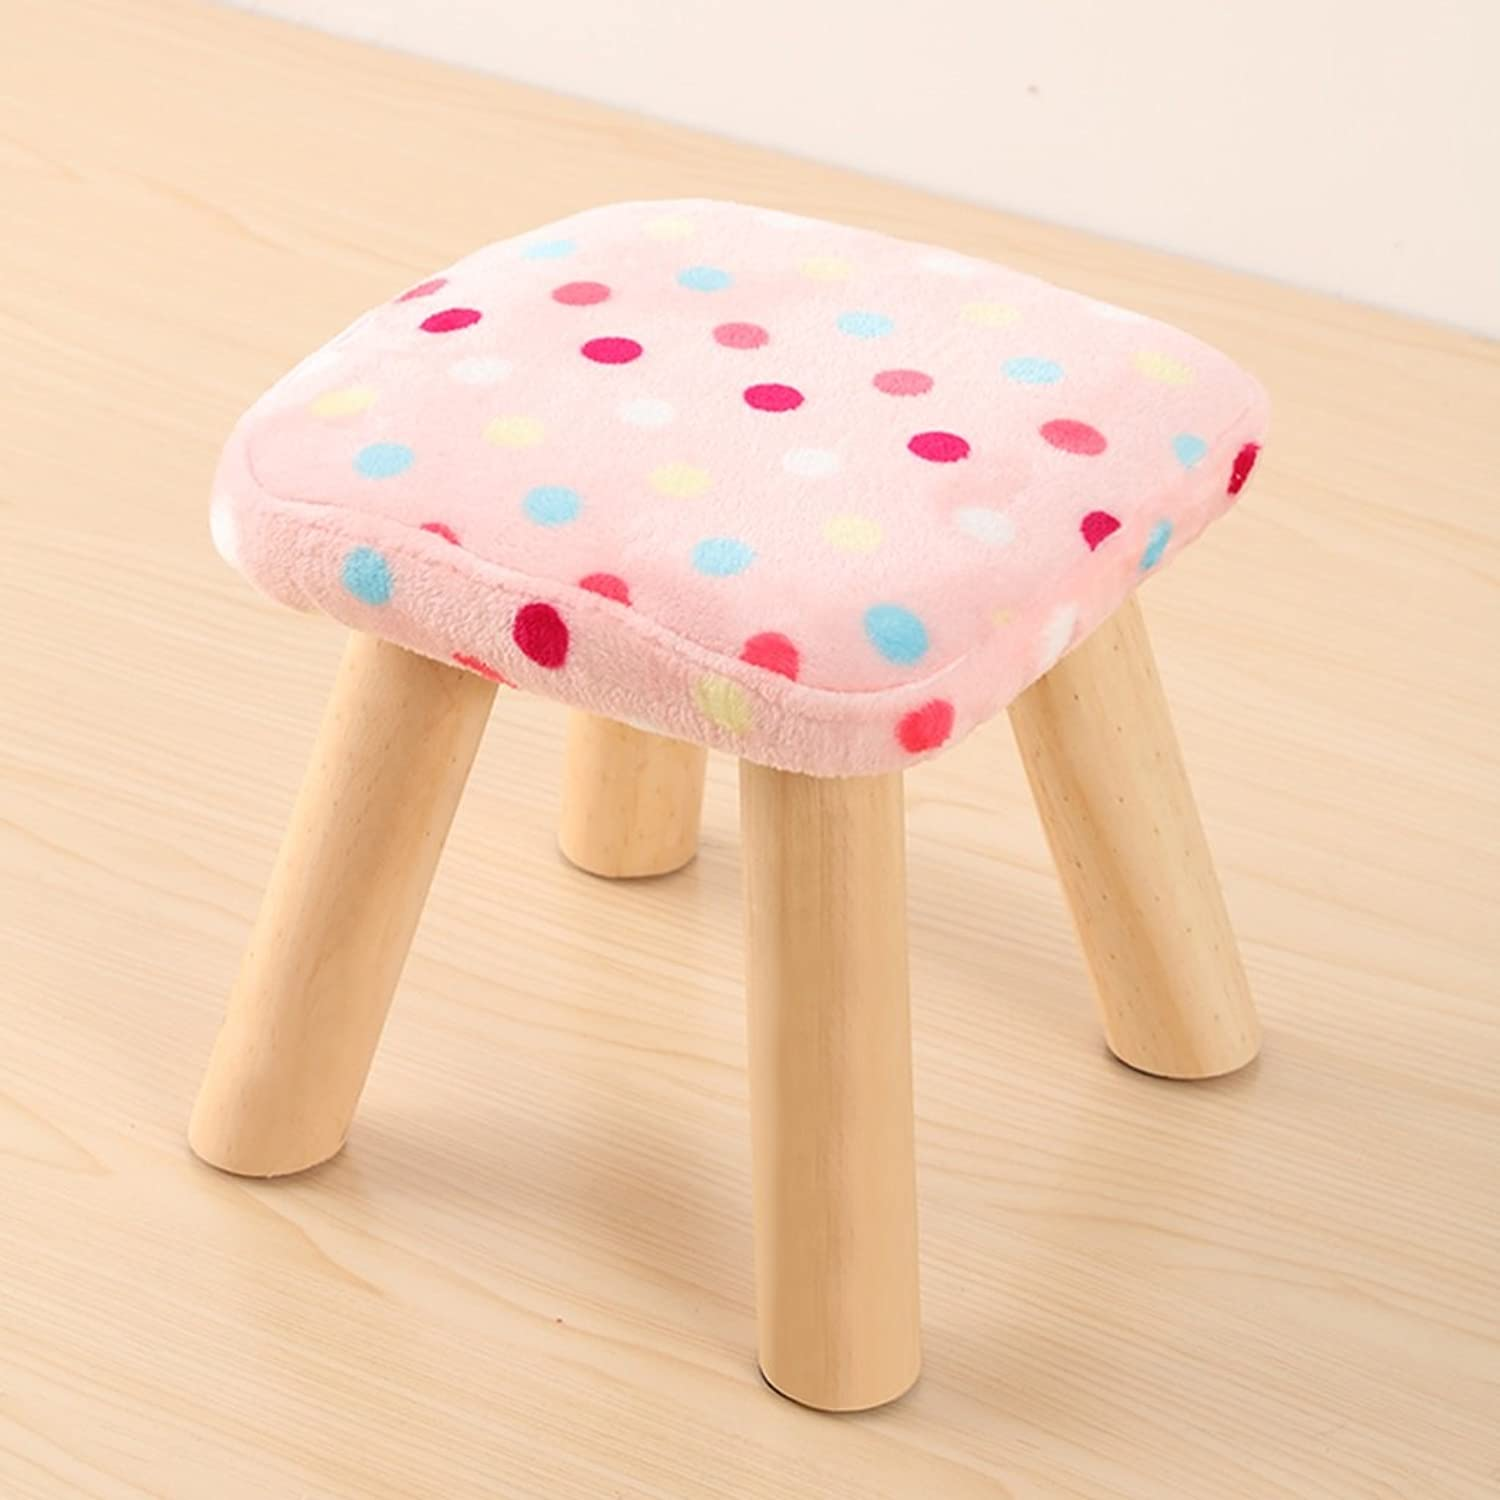 Pouf Footstool Square Footrest Seat Stool 4 Leg Stands Indoor Furniture(Pink, White, bluee, red and White) (color   1)